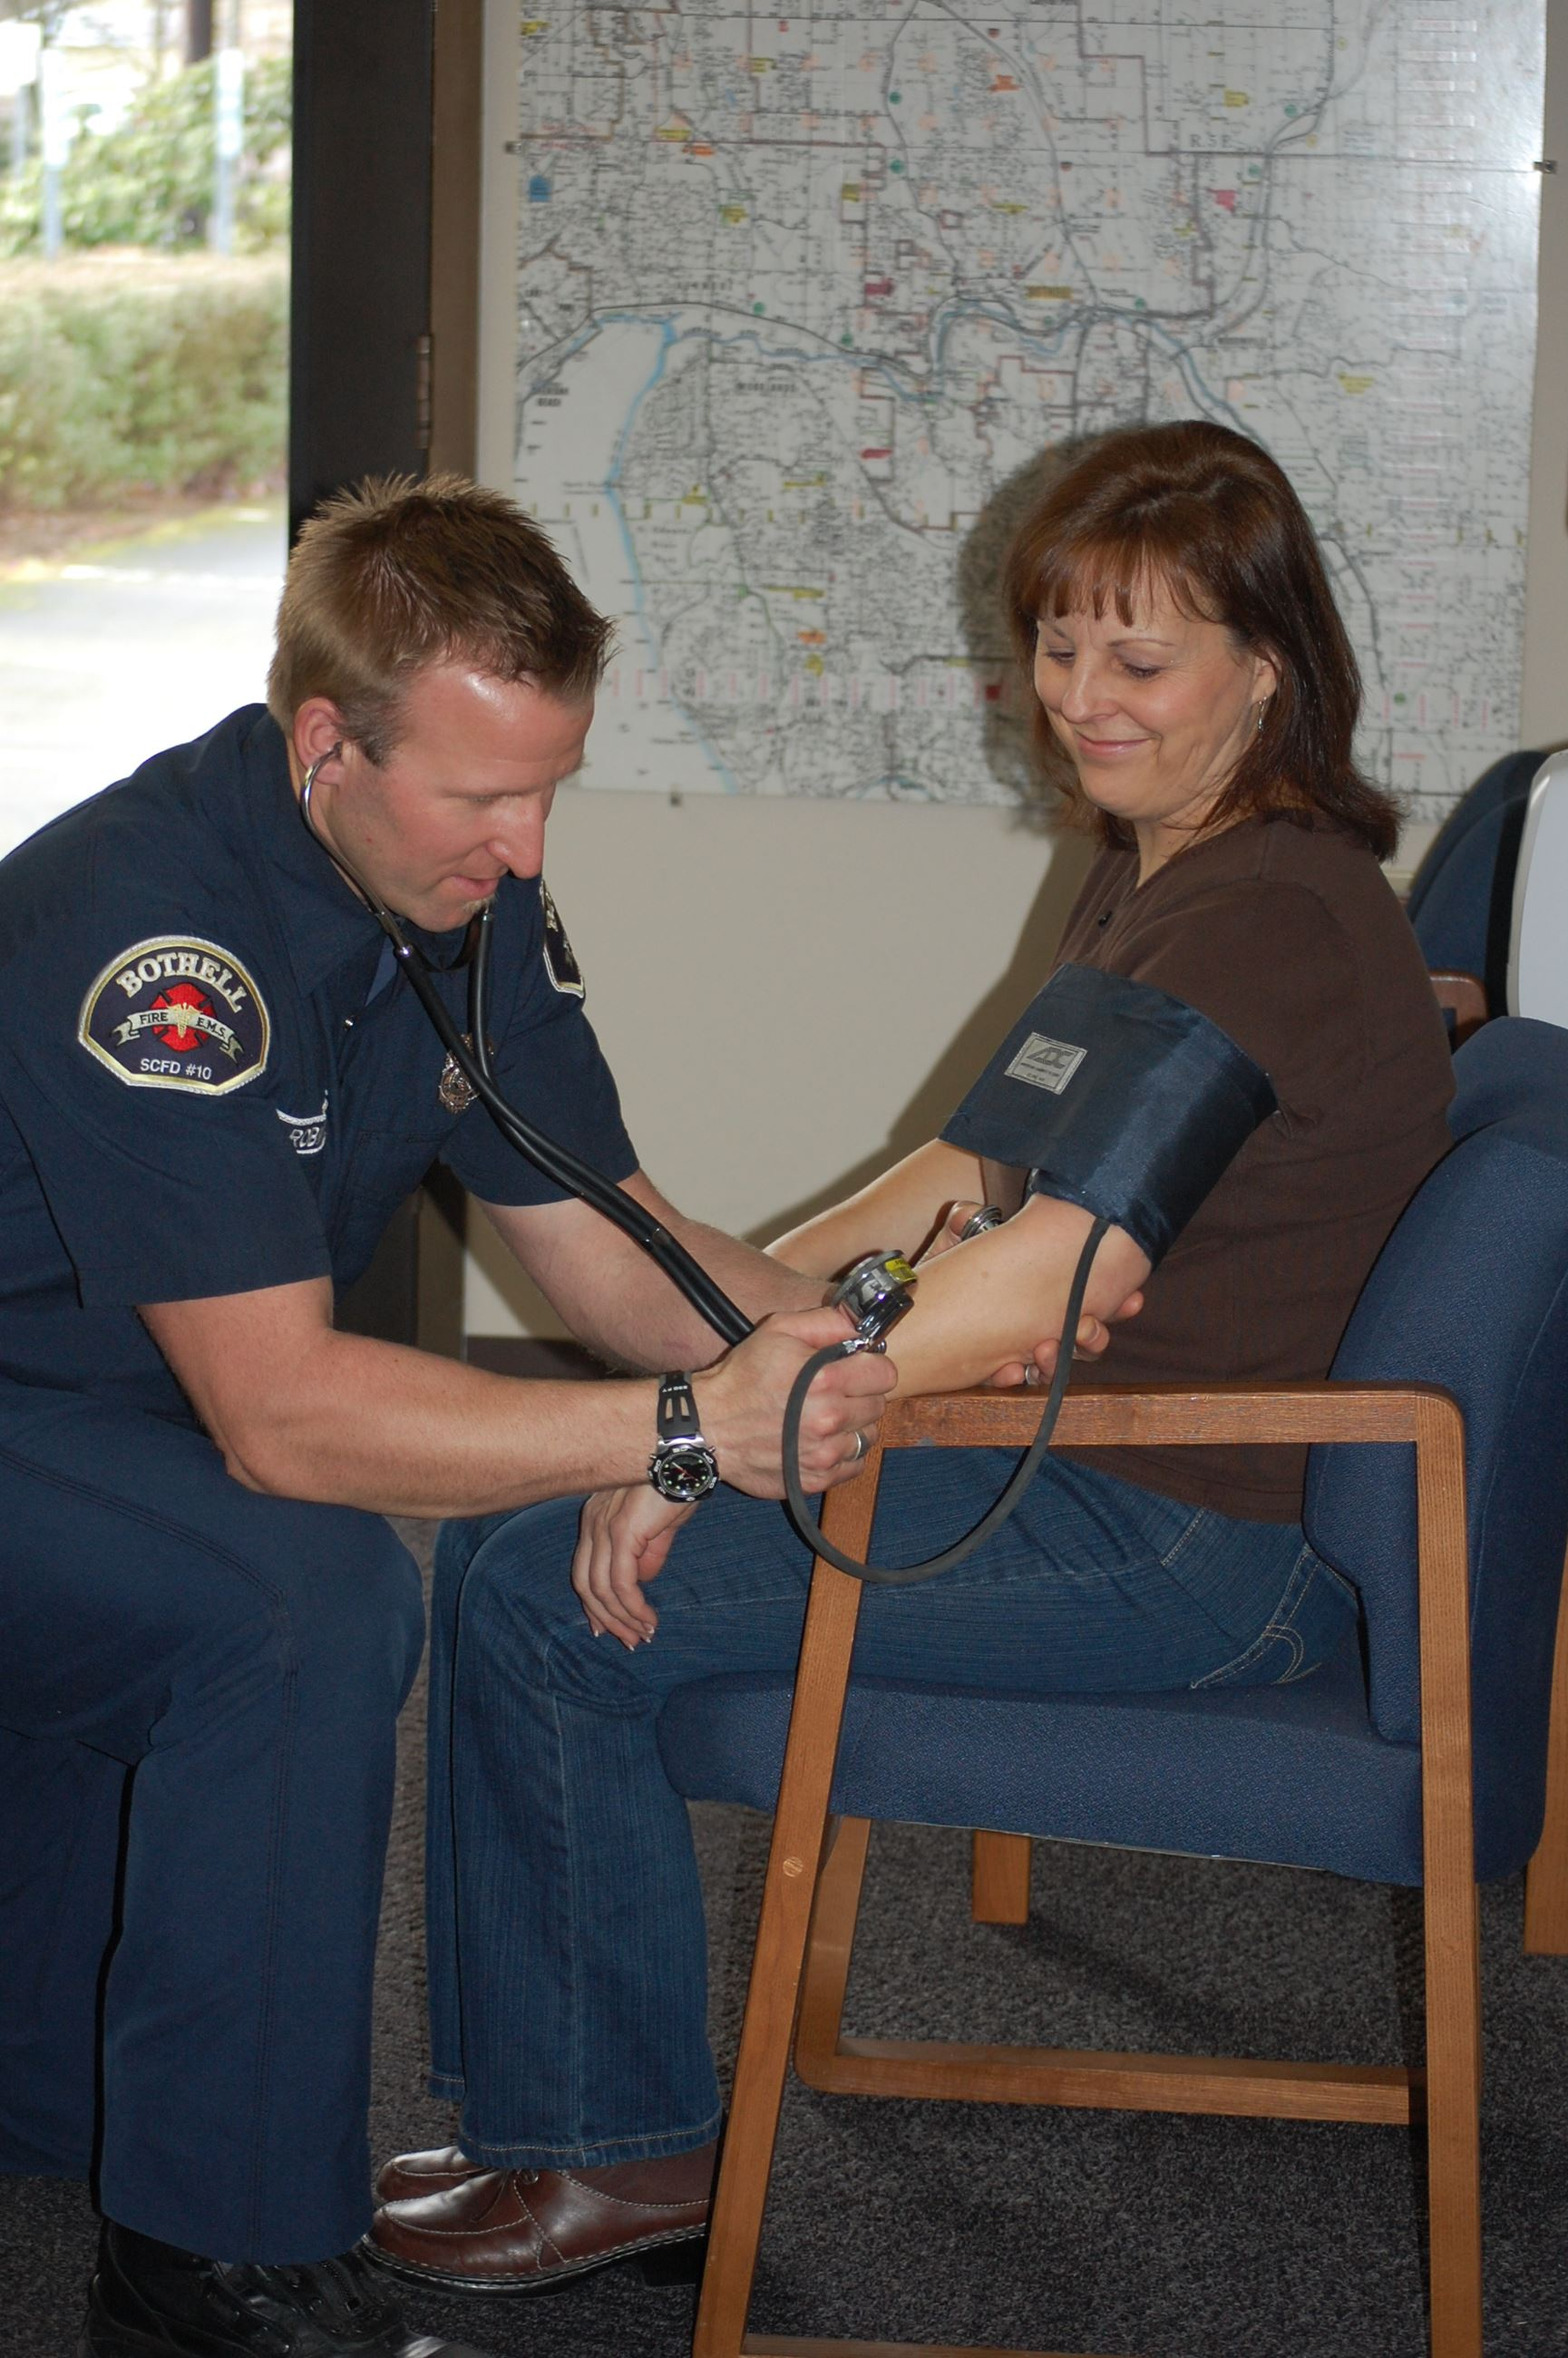 Fire Department member performing a blood pressure check on a woman.